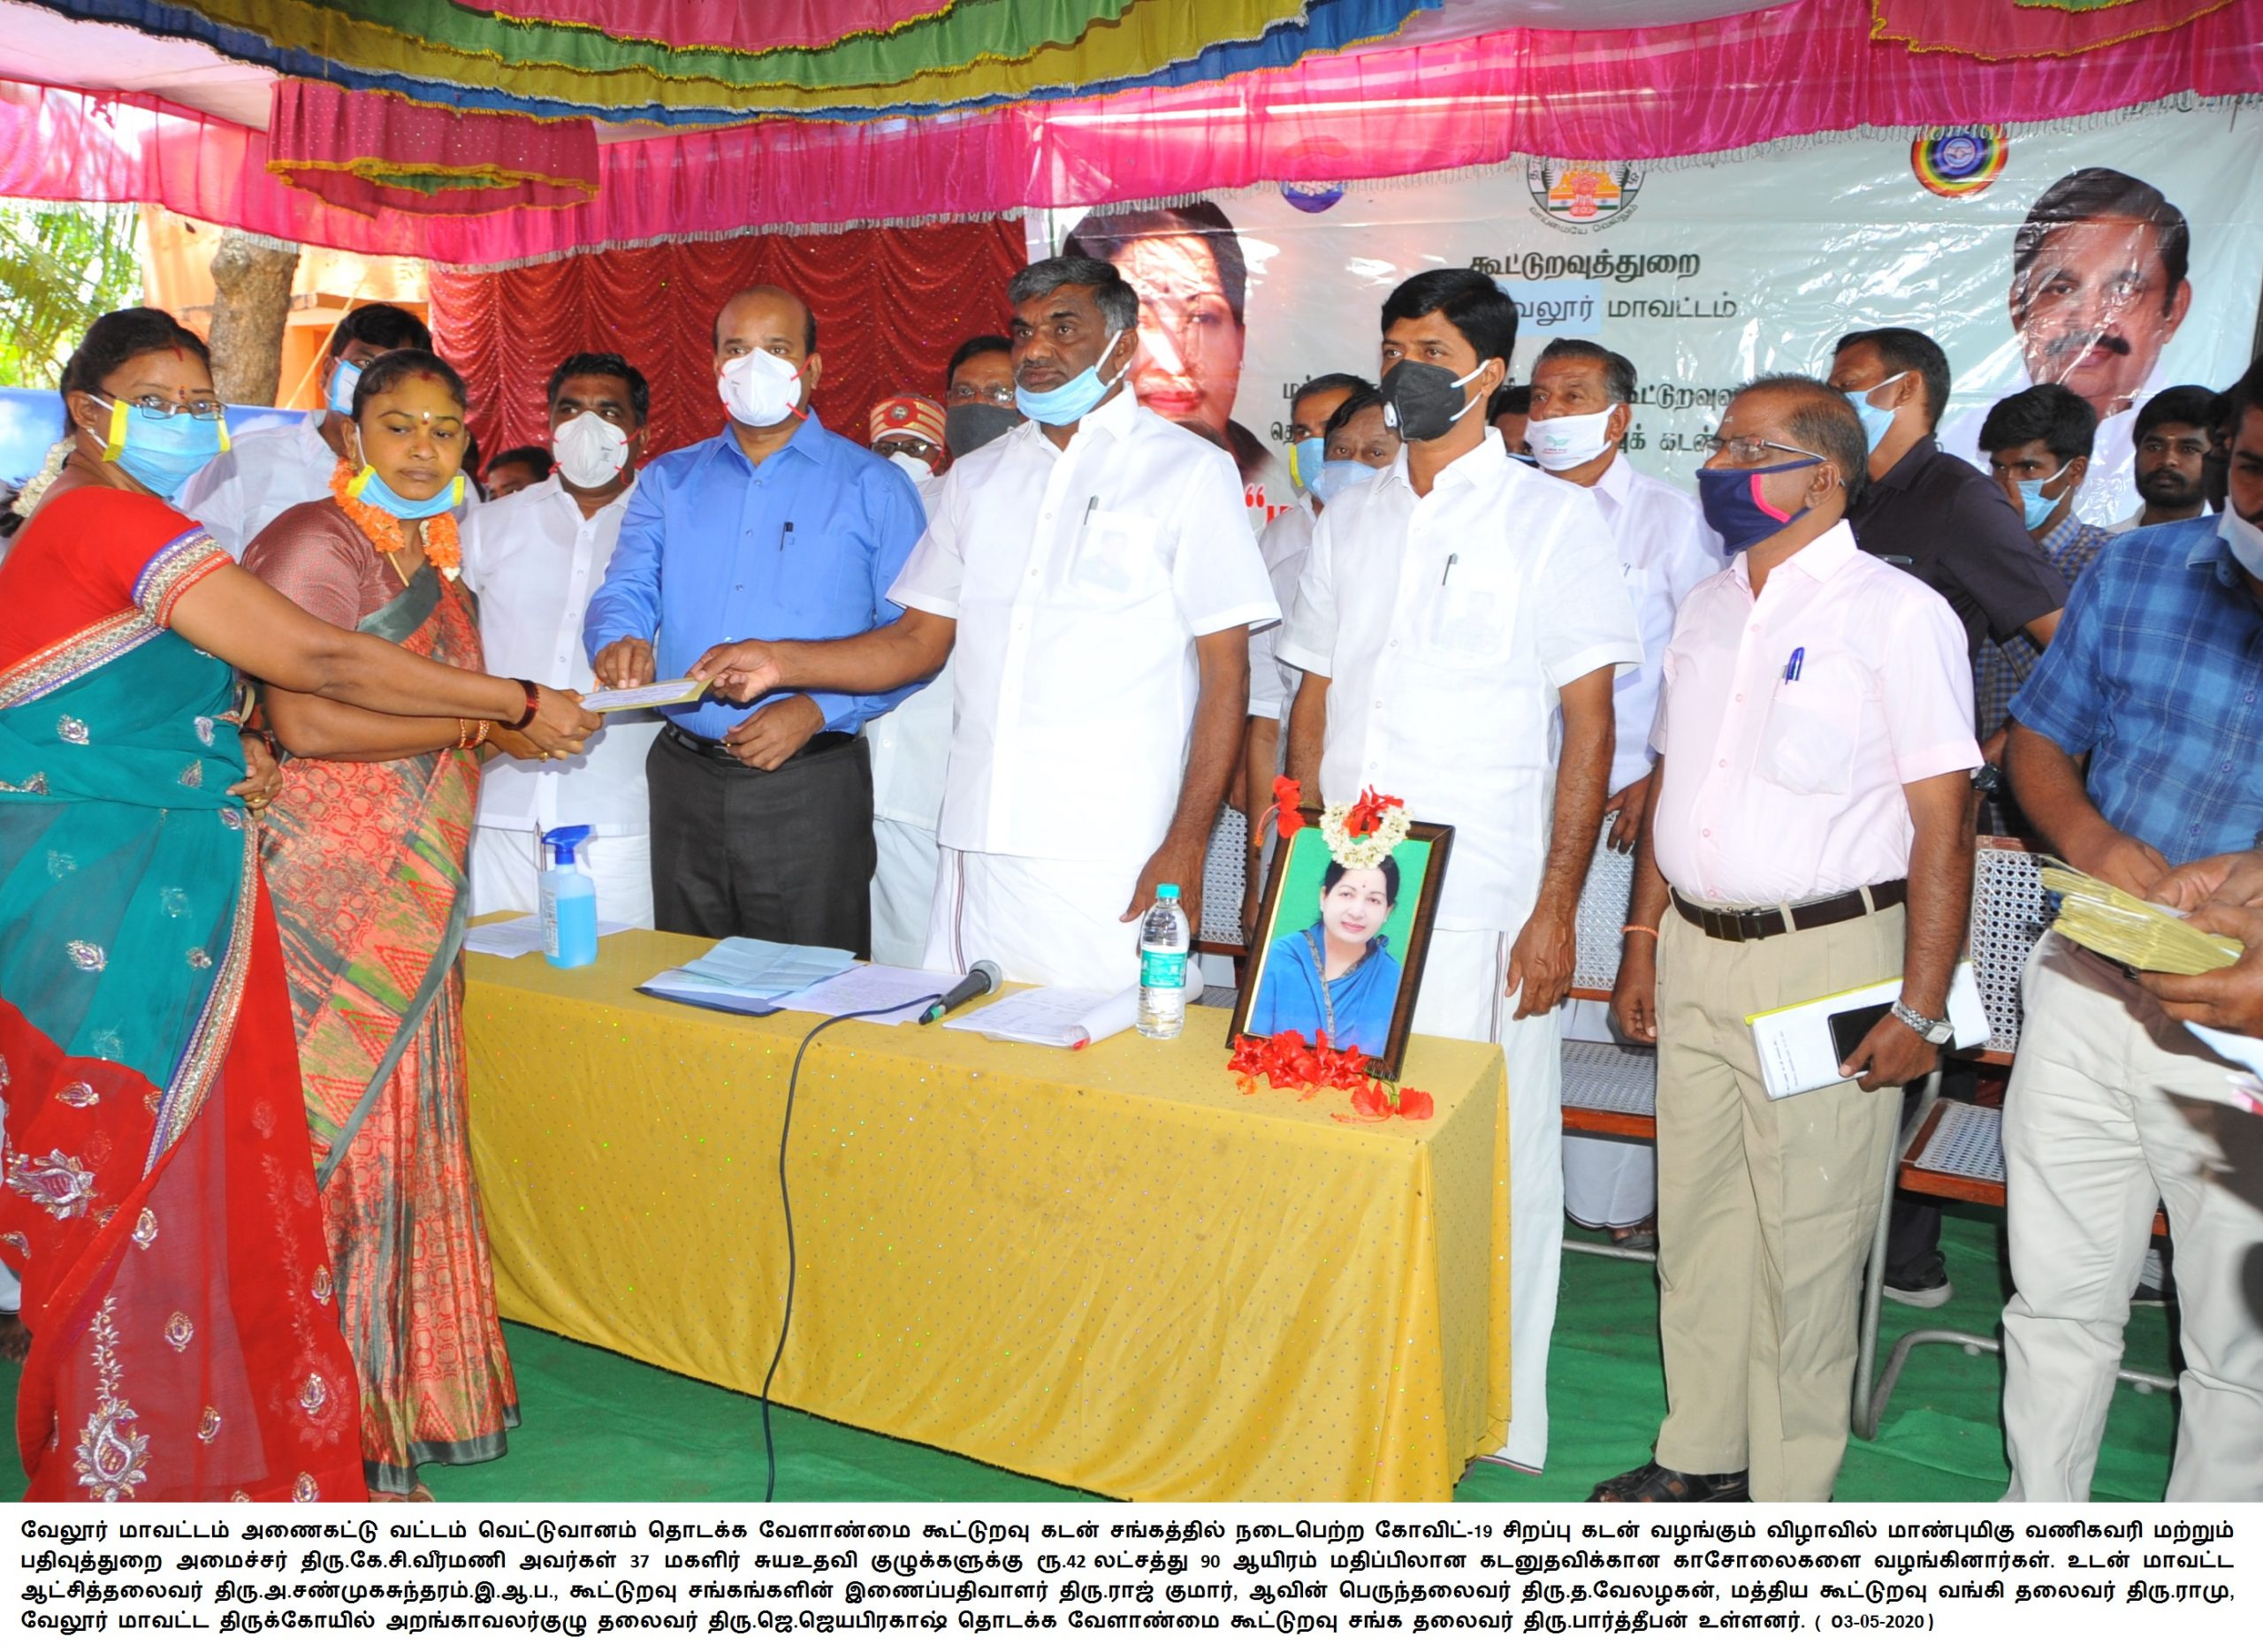 Honorable Commercial Tax and Registration Department Minister K.C.Veeramani inaugurated Special Loan Mela as Covid19 relief Activity 03-06-20210